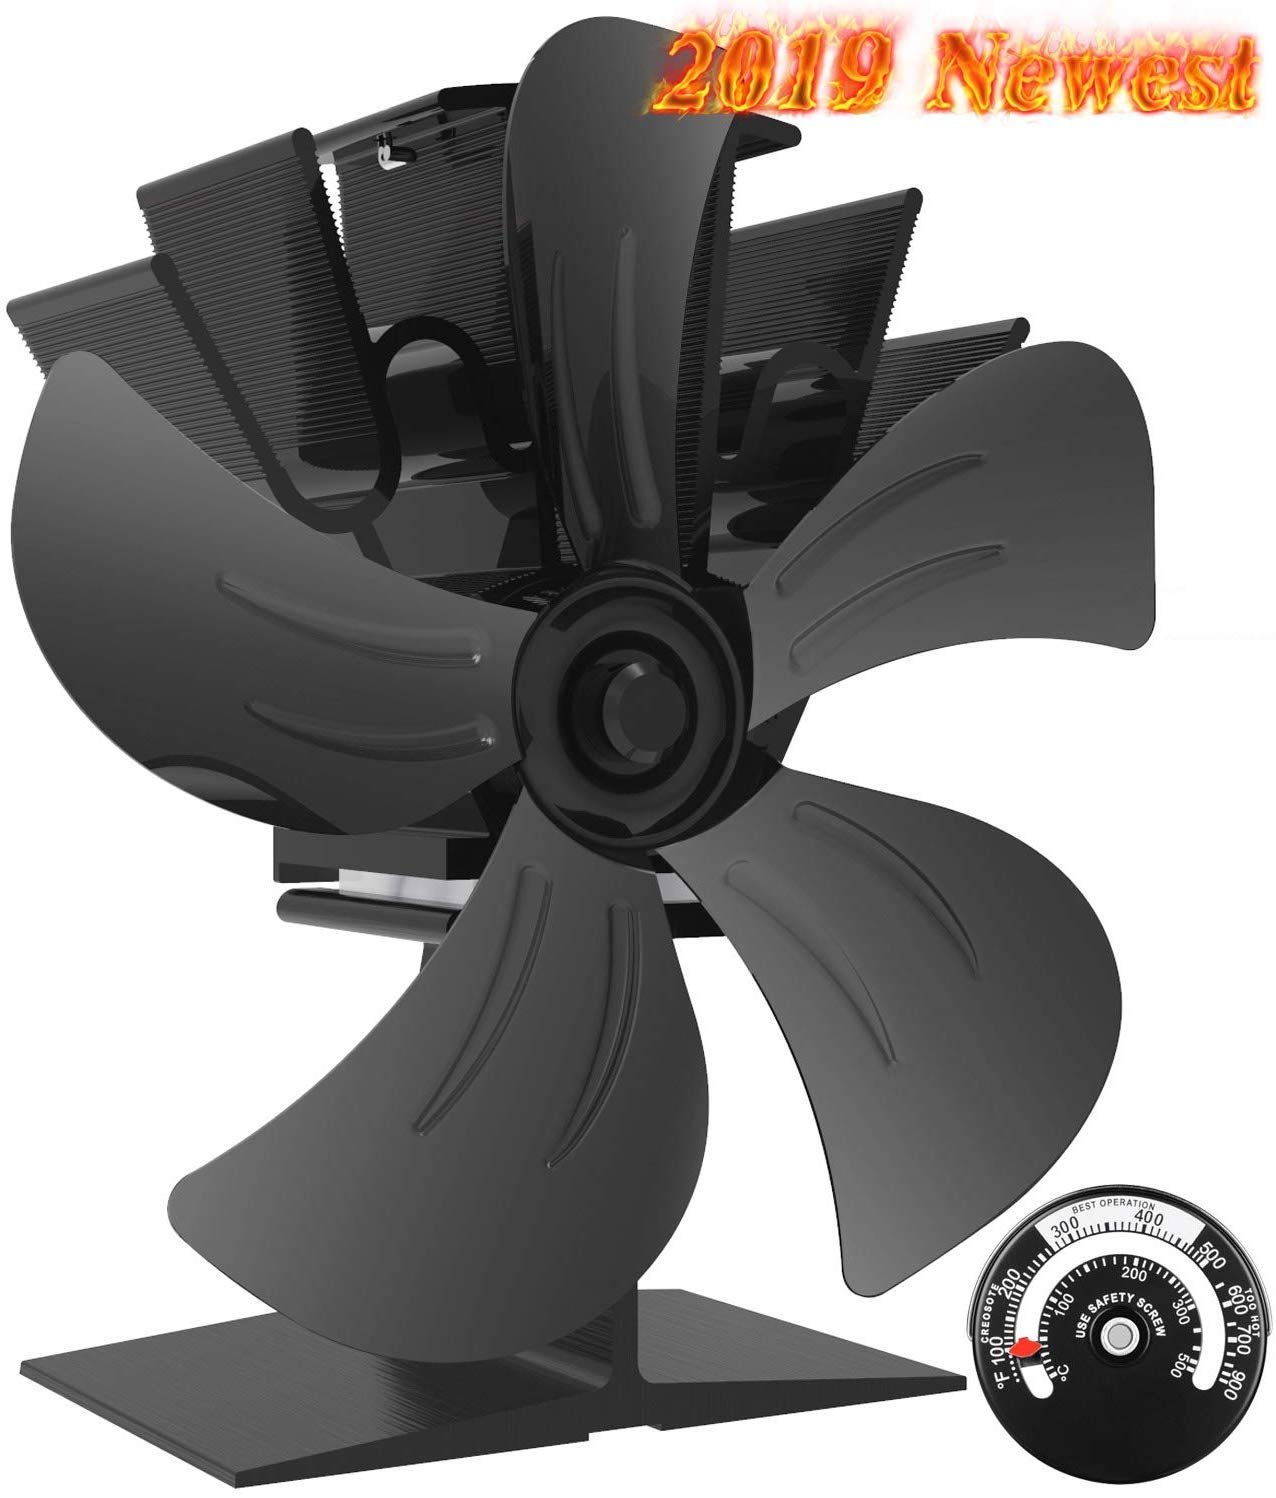 X-cosrack 5 Blades Heat Powered Stove Fan for Wood Log Burner Fireplace Slient Eco-Frienly Fan with Magnetic Thermometer Aluminium Large by X-cosrack